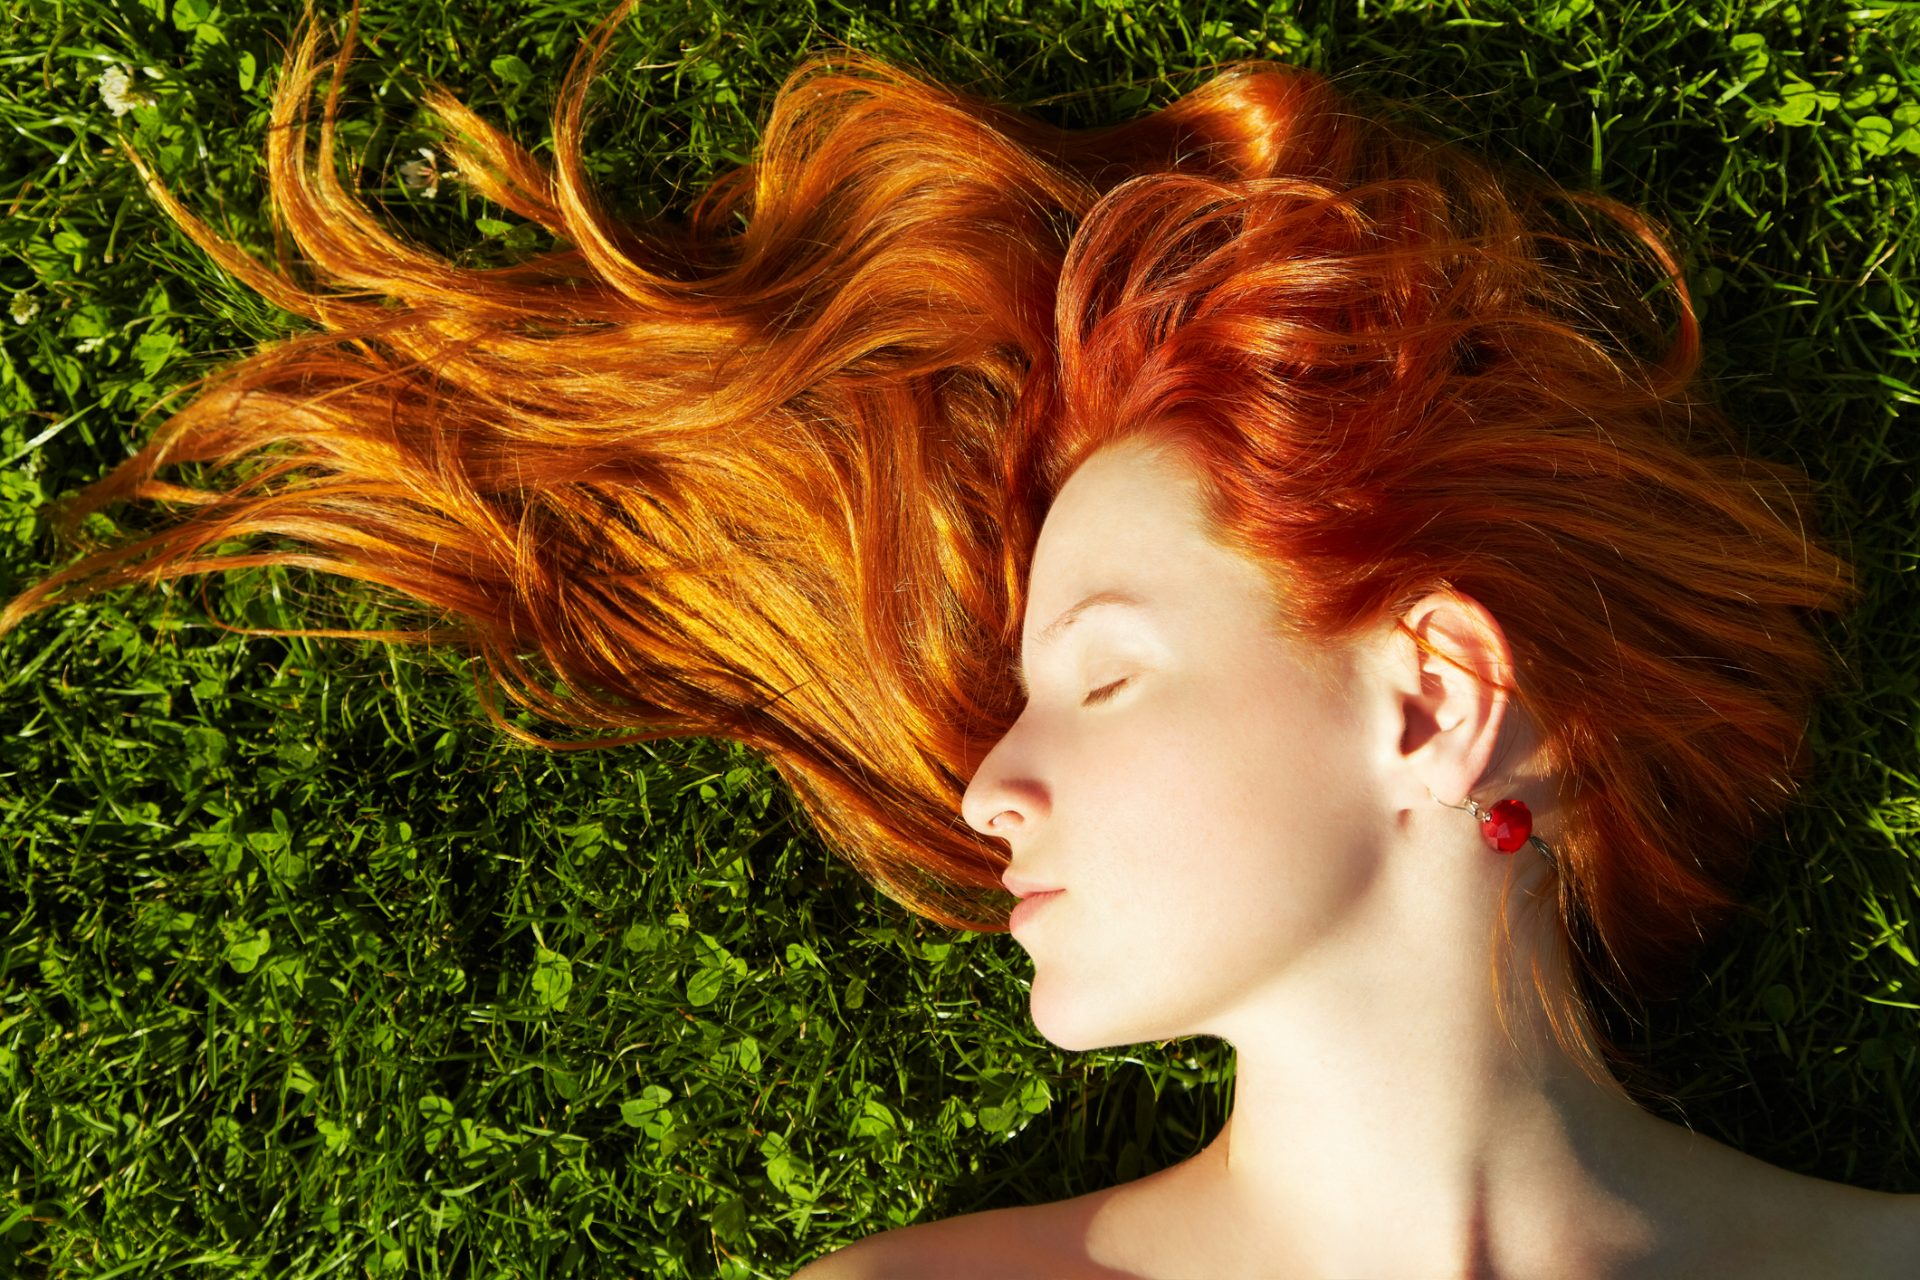 vegan hair care products